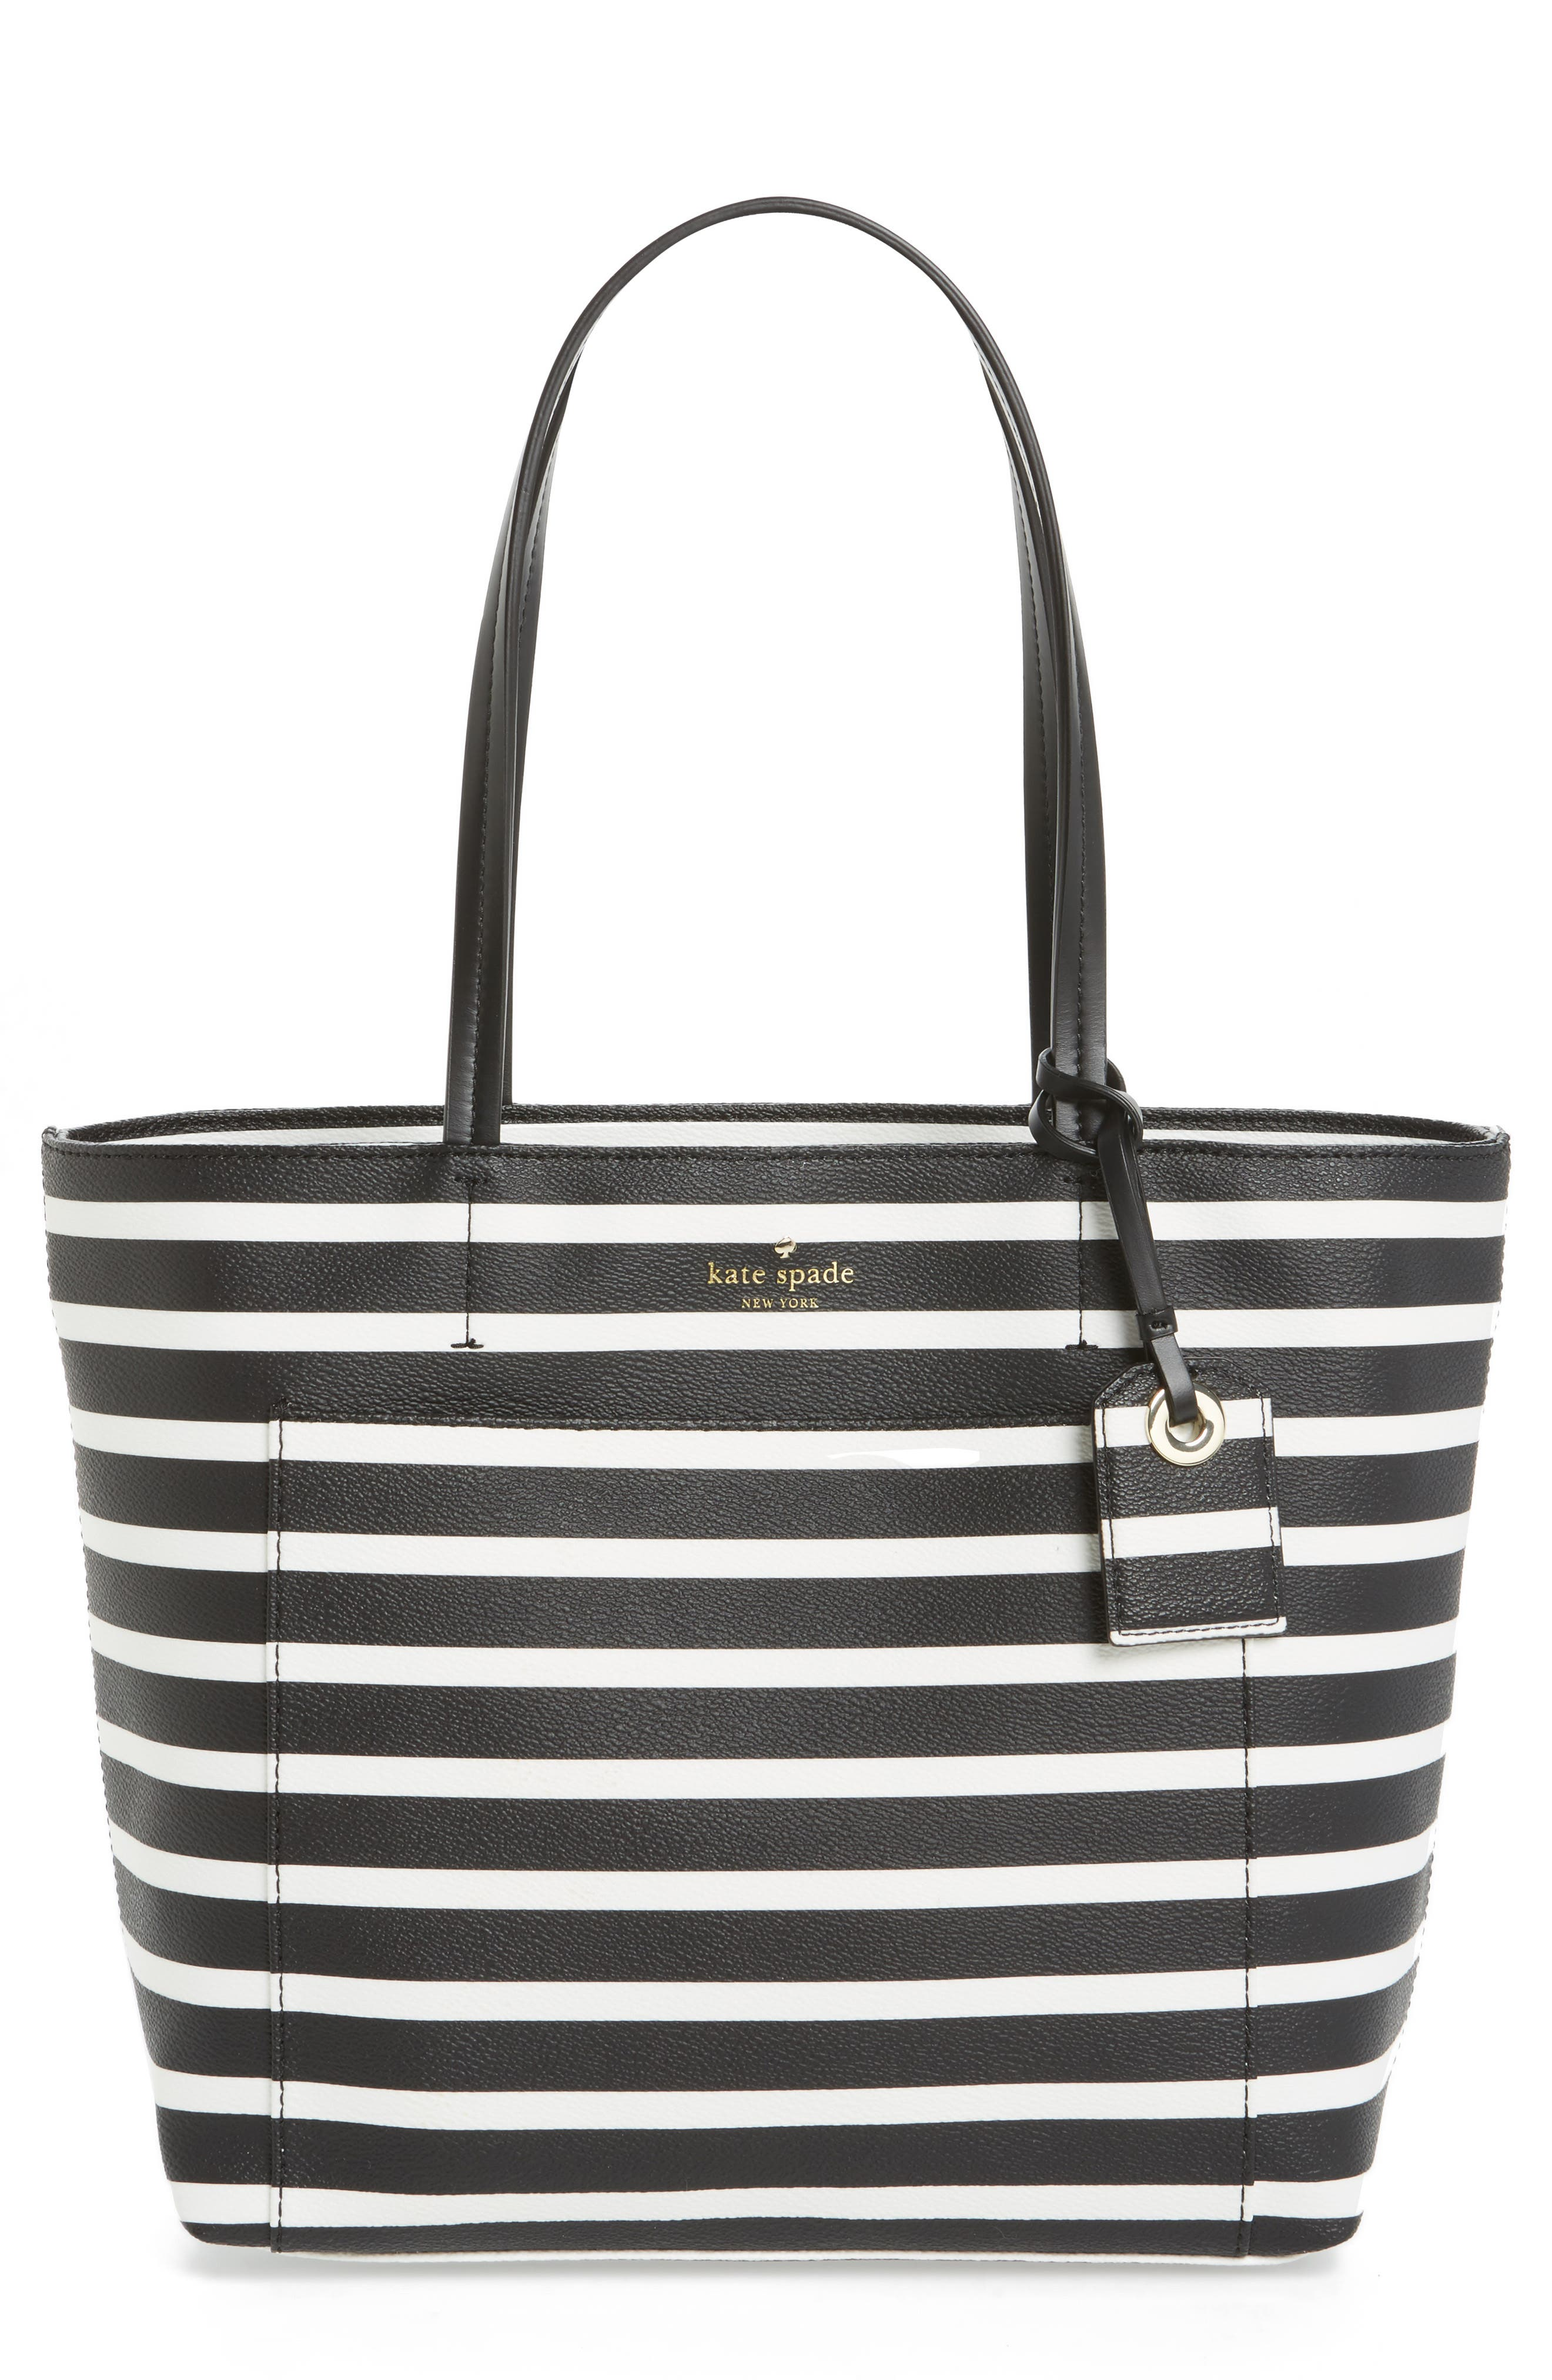 hyde lane - small riley faux leather tote,                             Main thumbnail 1, color,                             Black/ Off White